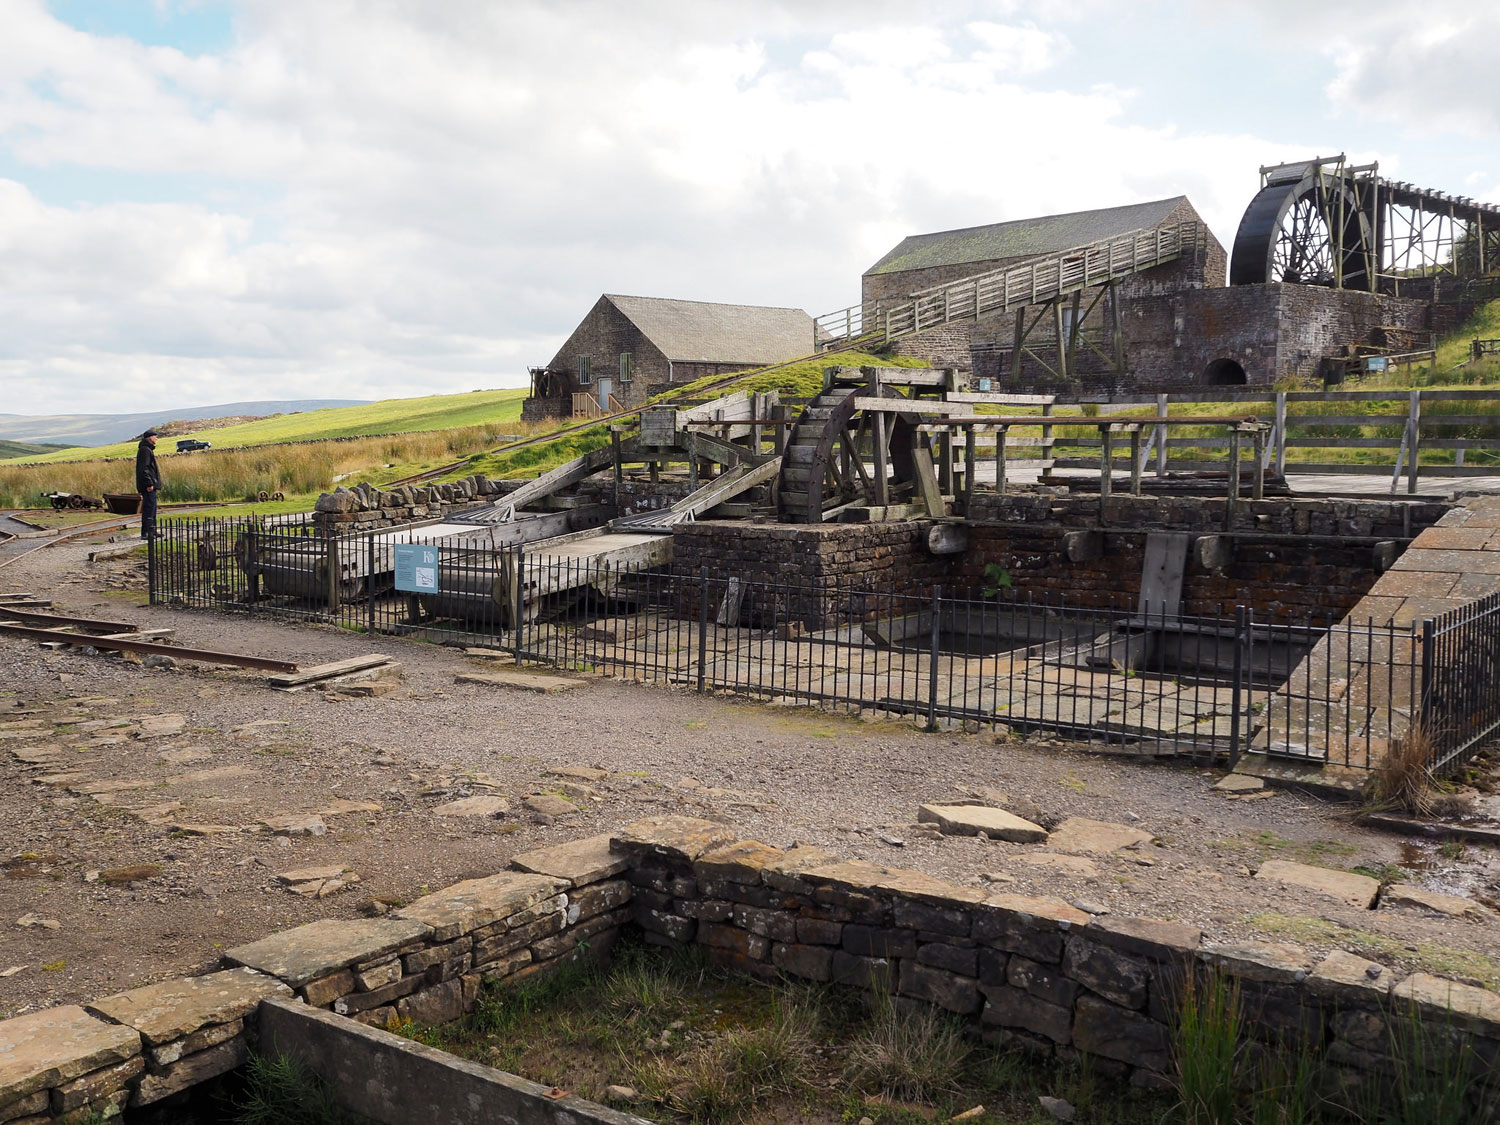 photograph of disused mining buildings and machinery